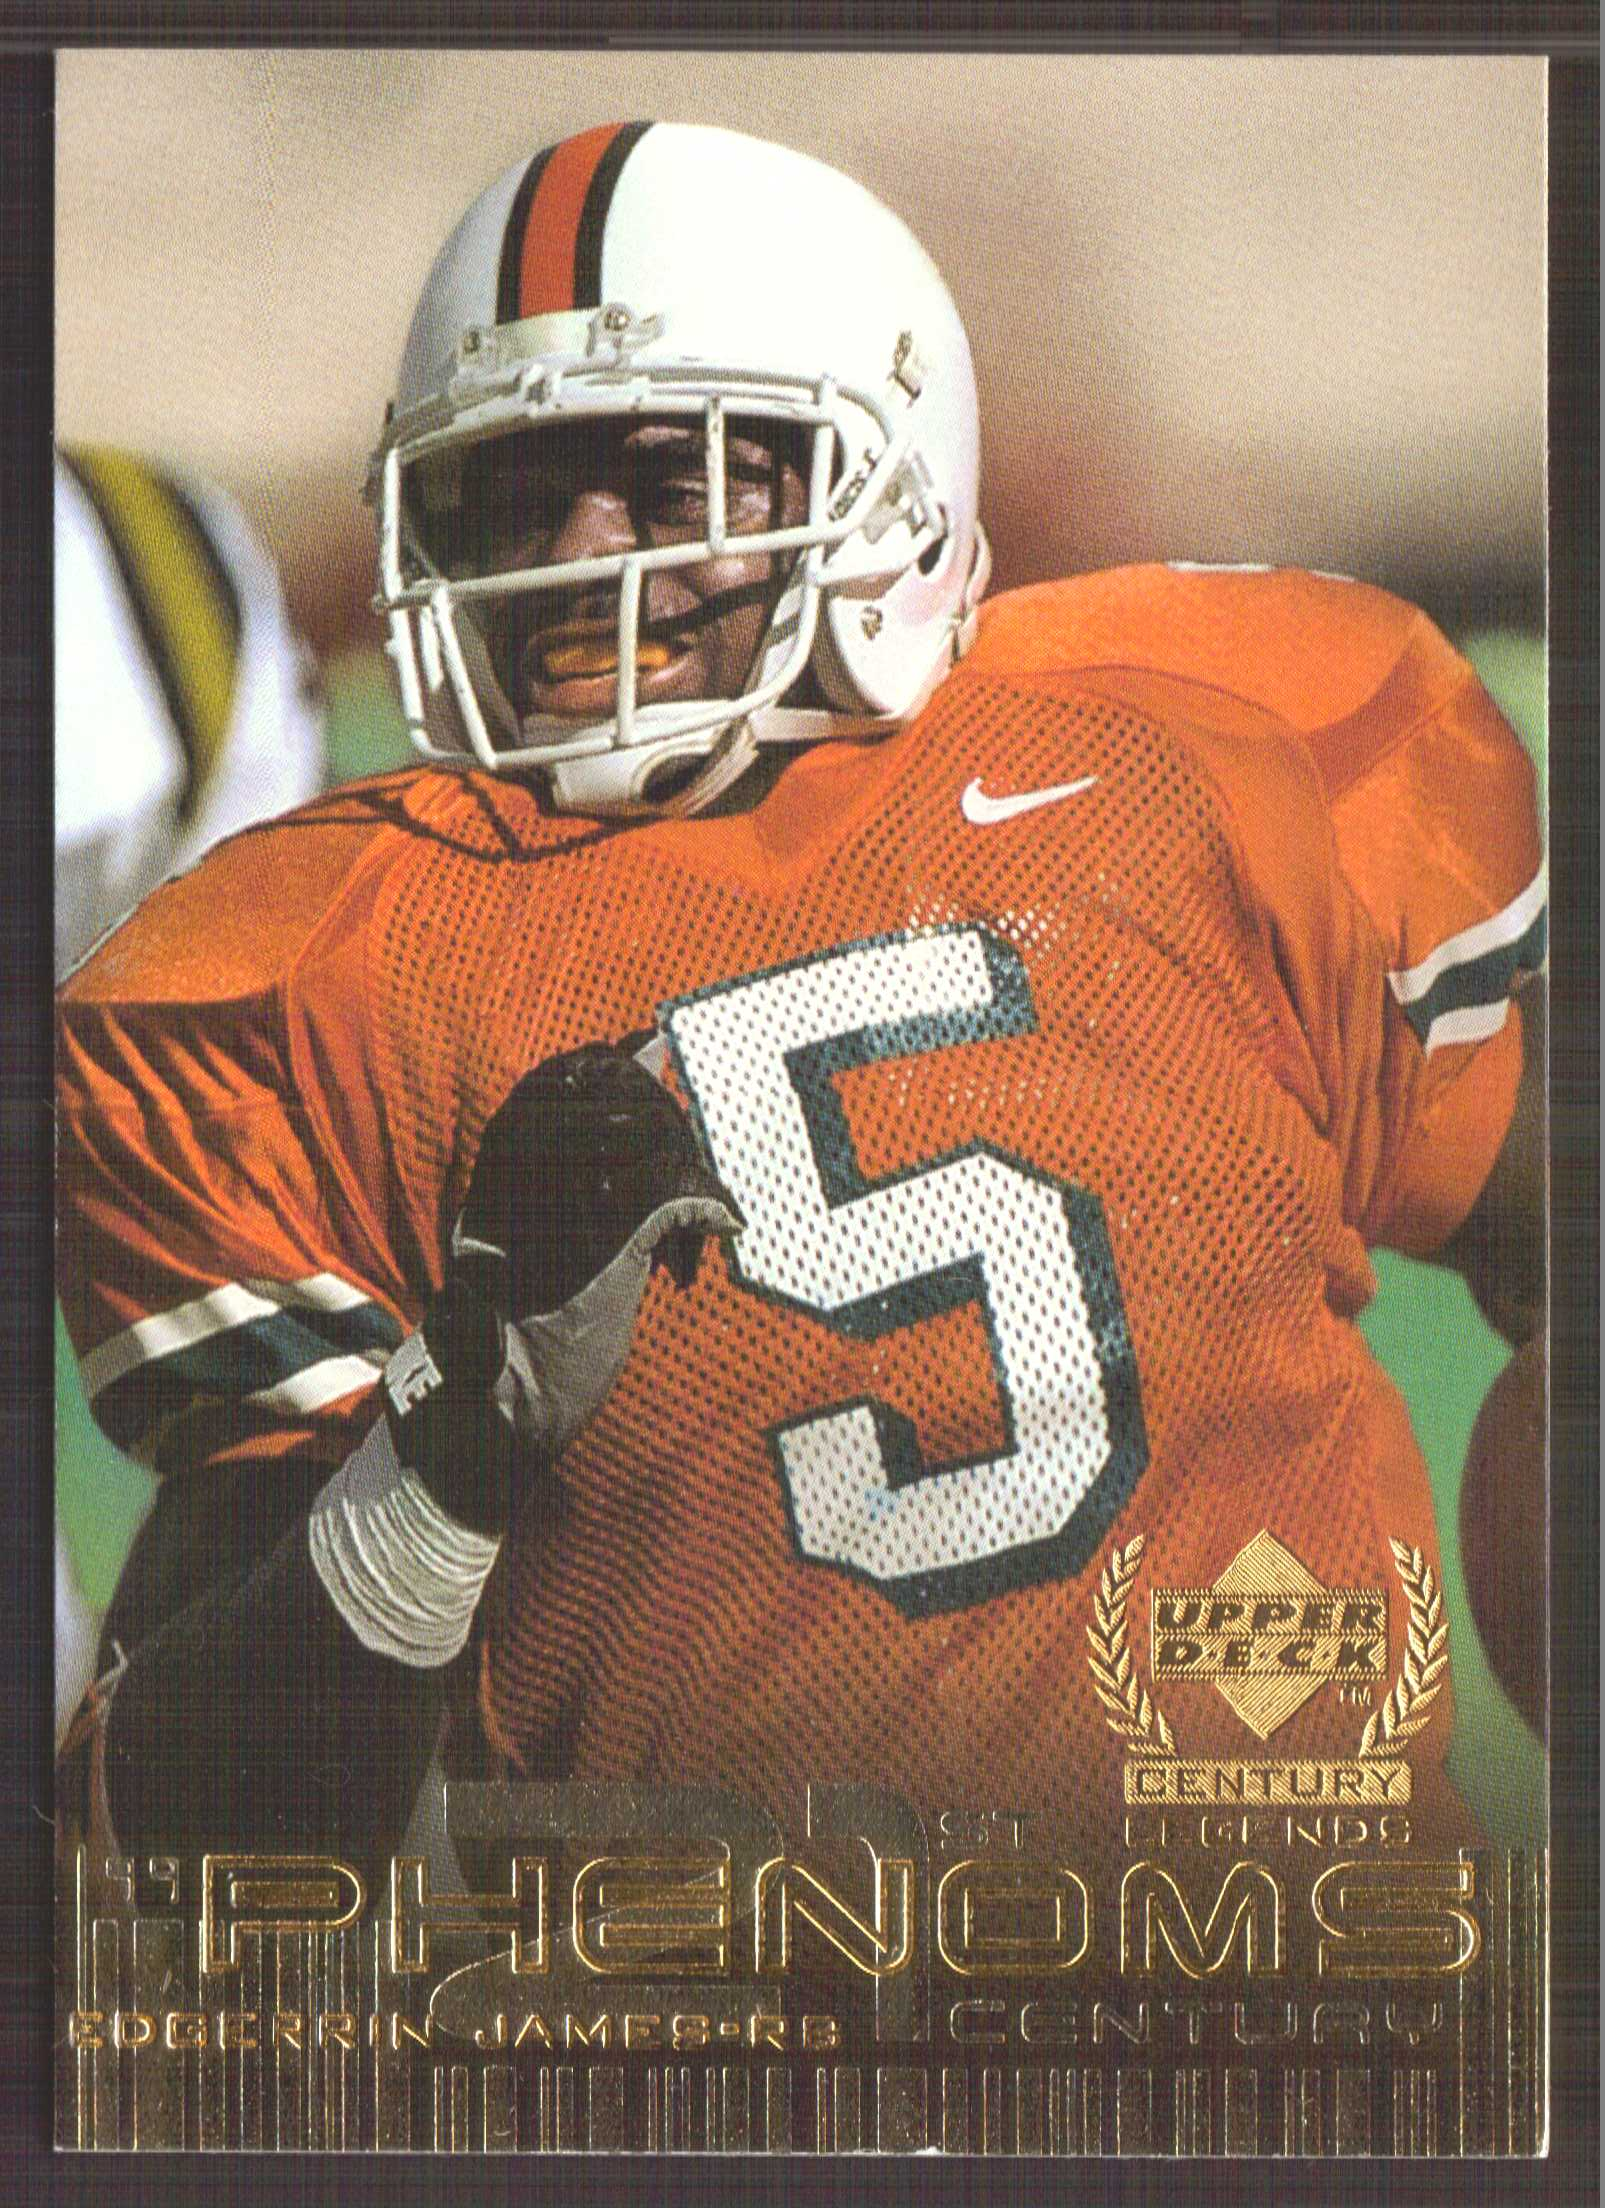 1999 Upper Deck Century Legends #135 Edgerrin James RC